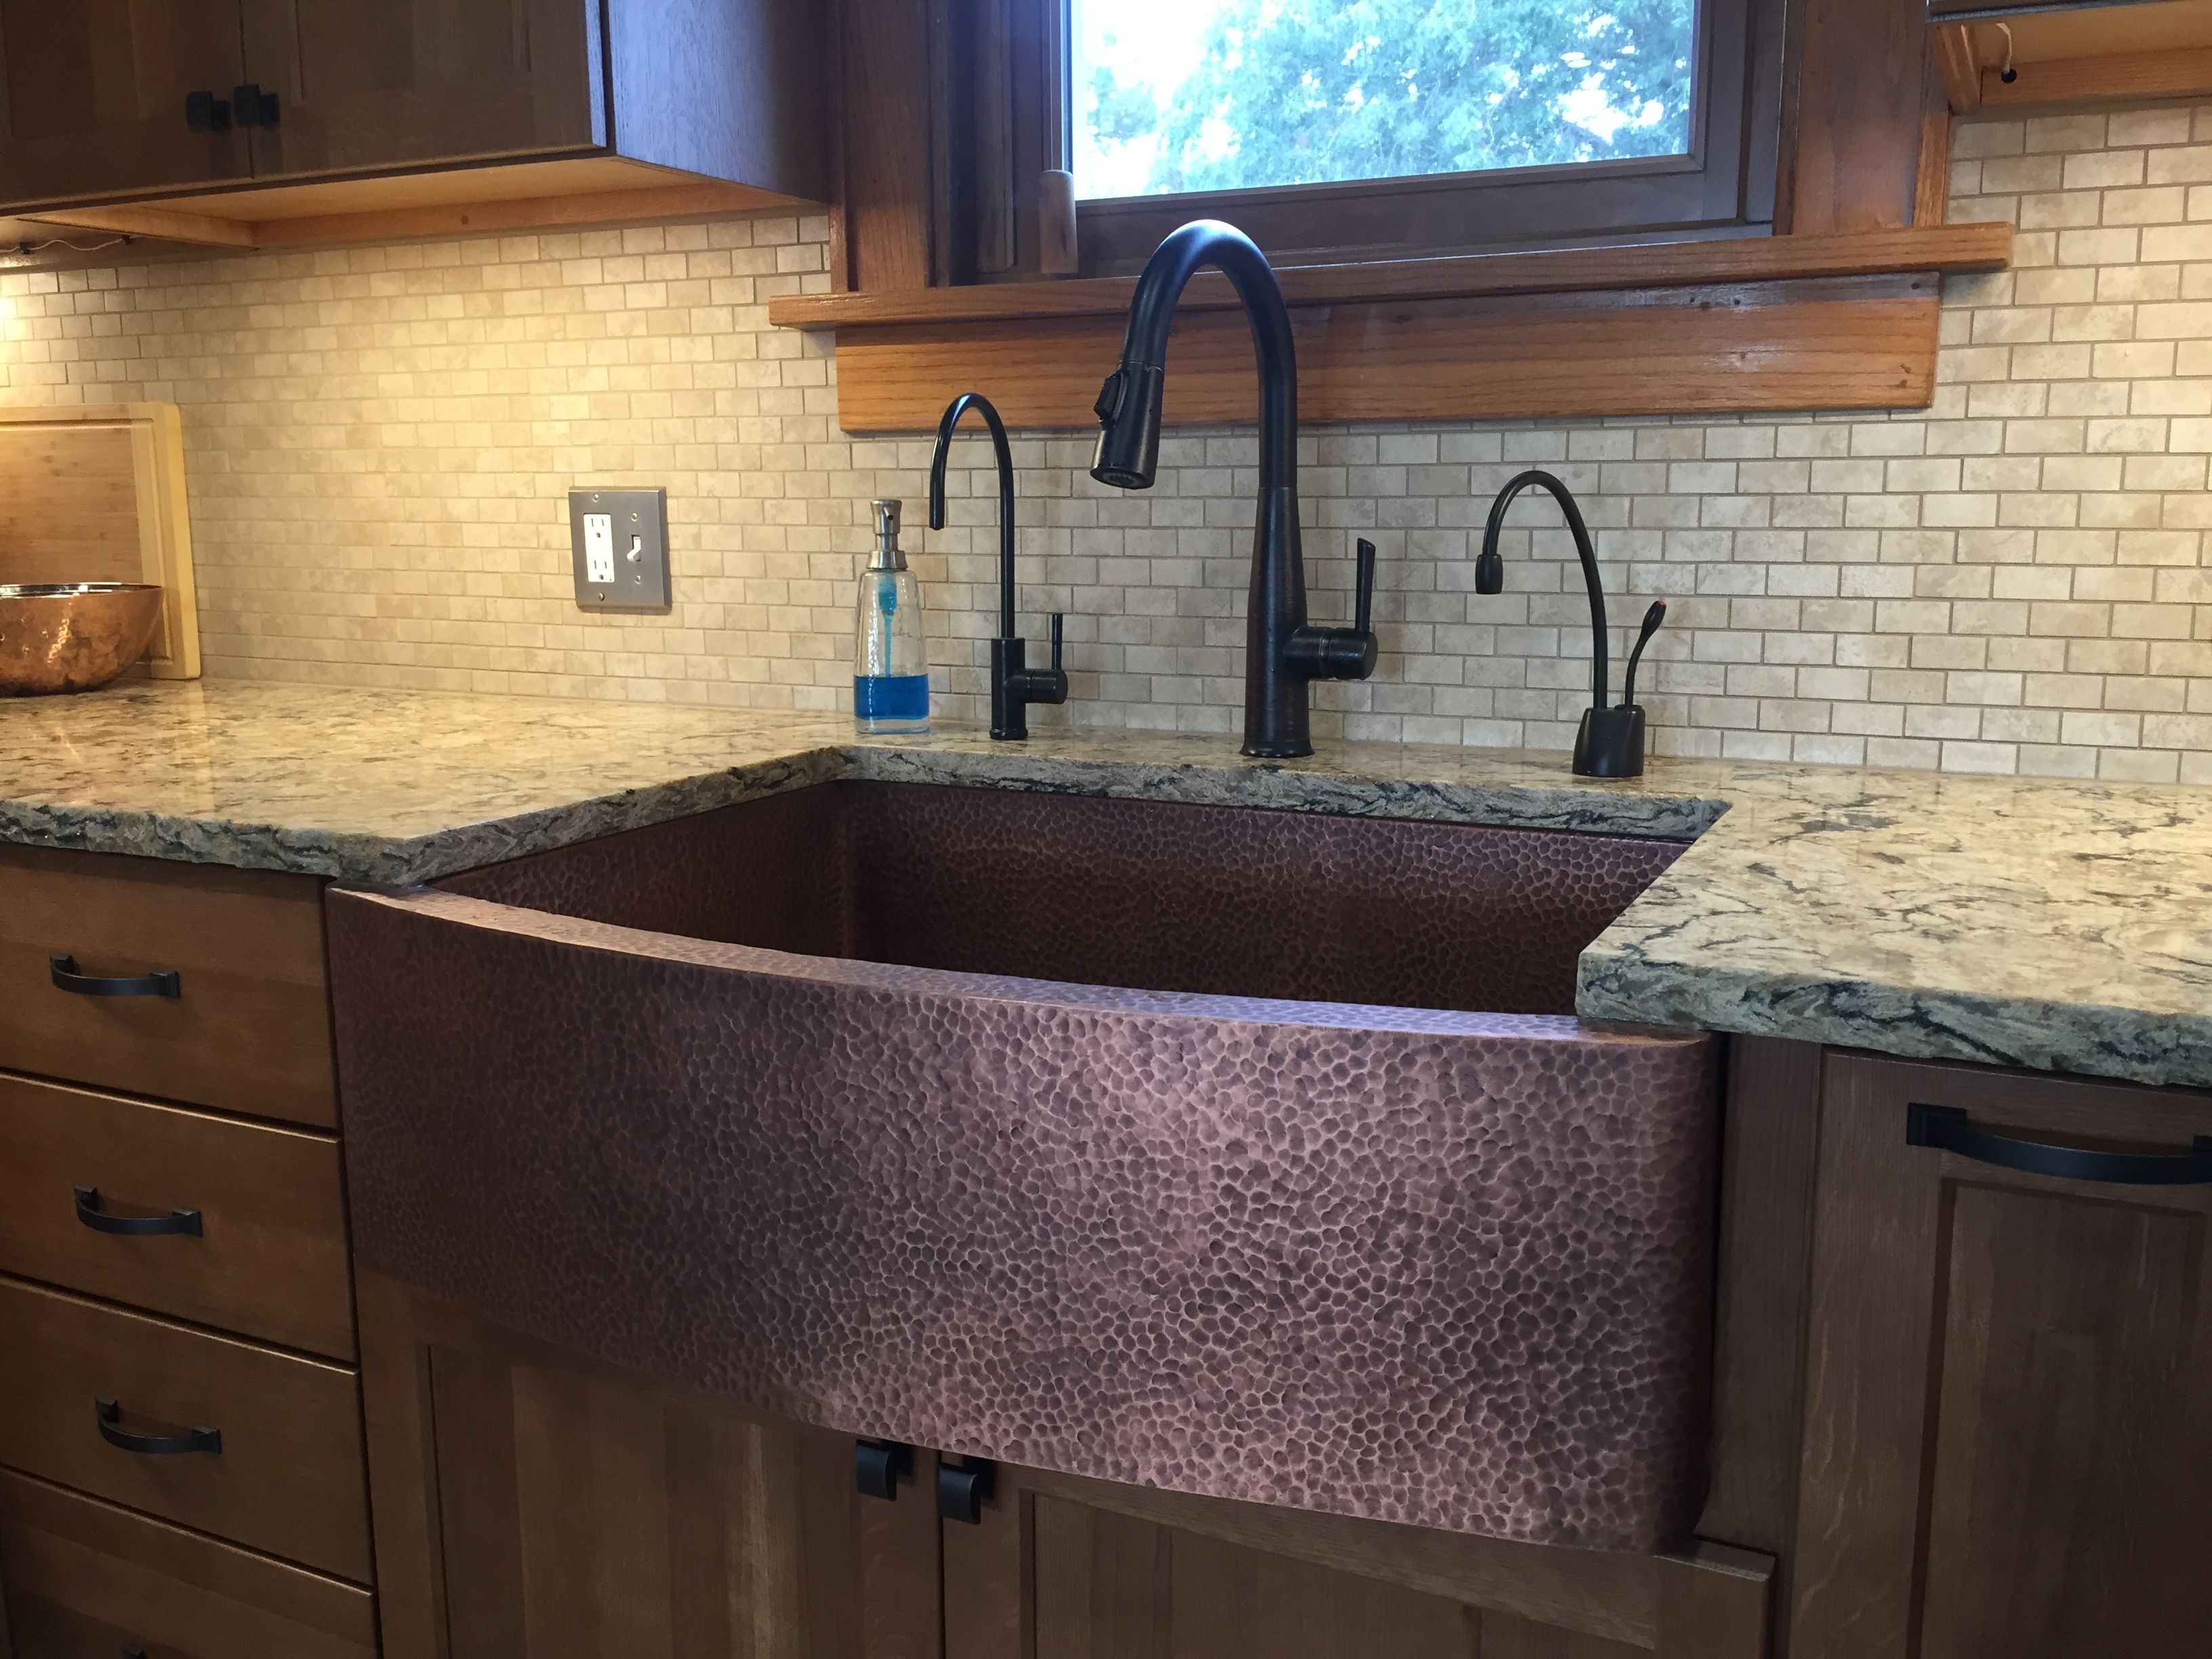 Hammered copper farm house sink with Cambria Bradshaw countertops